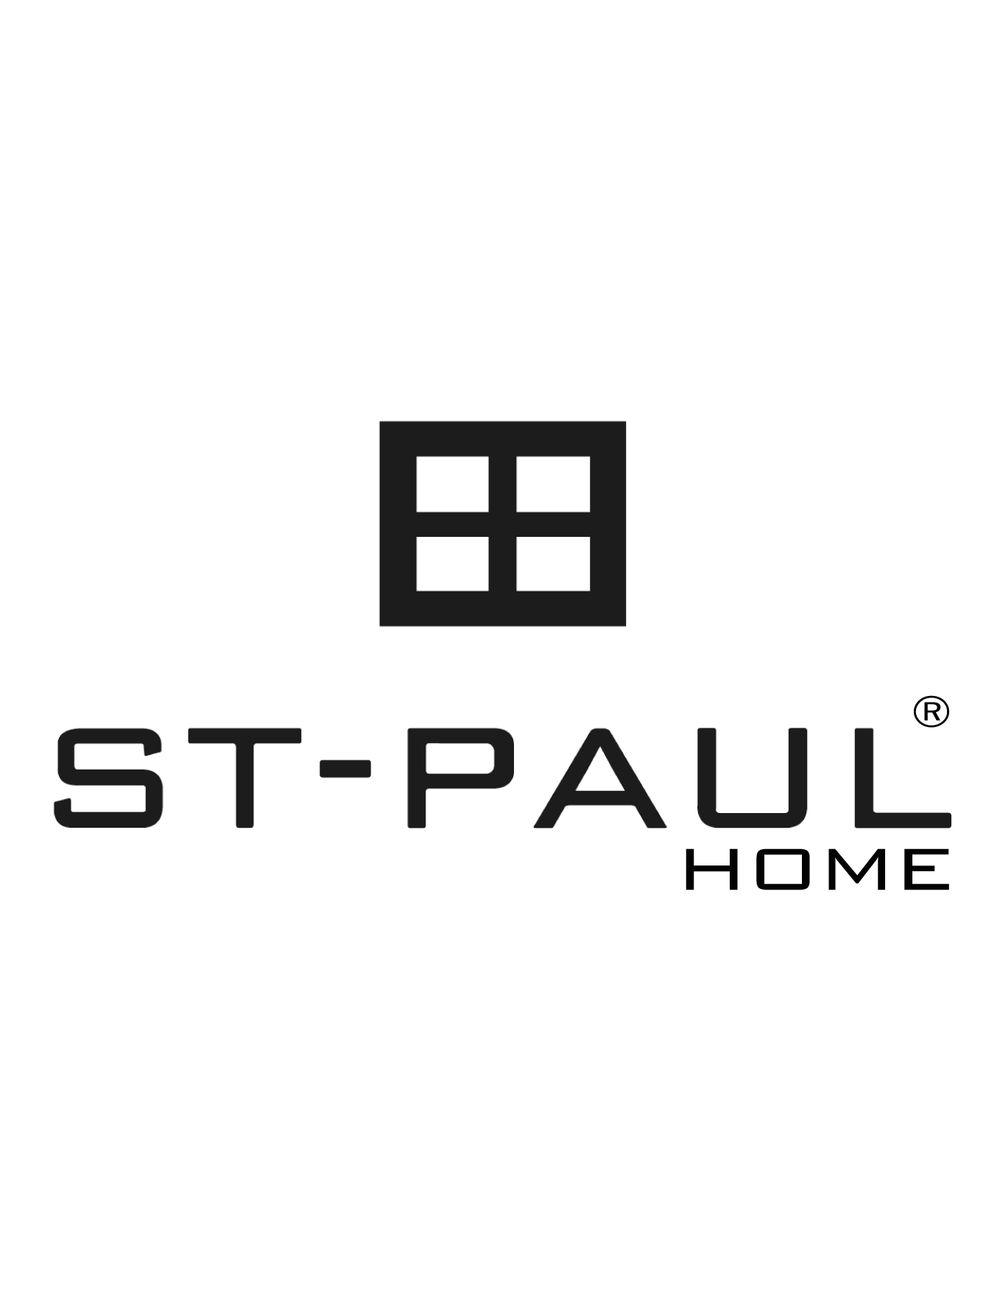 weblogo St-Paul Home.jpg